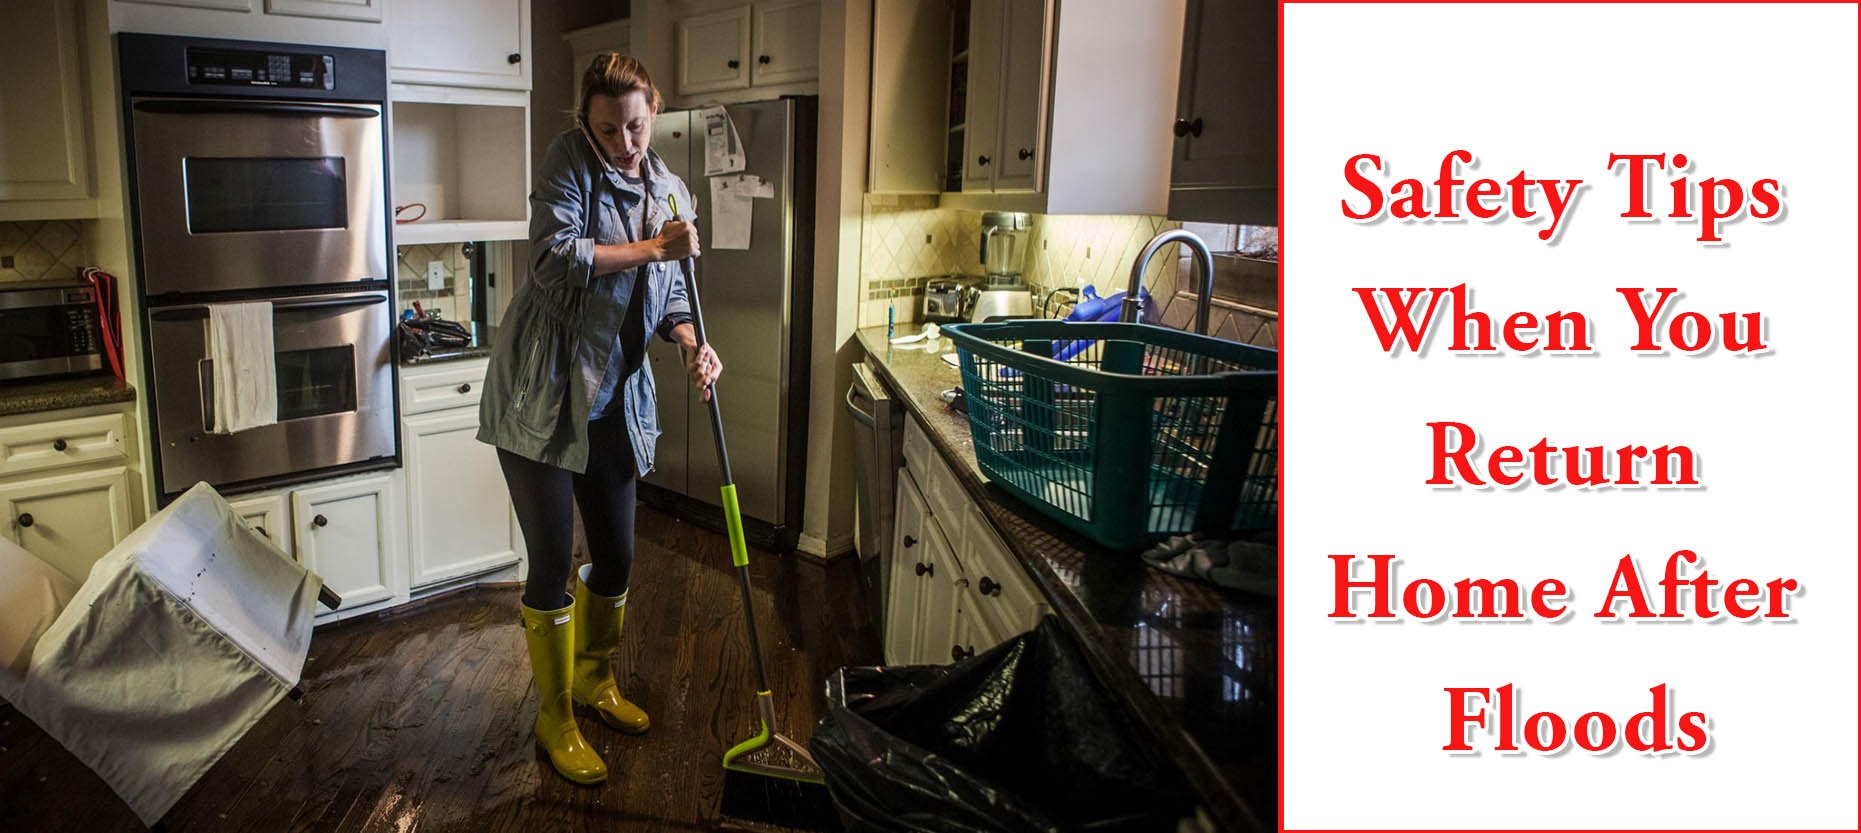 8 SAFETY MEASURES FOR YOU, WHEN YOU RETURN TO YOUR FLOODED HOME